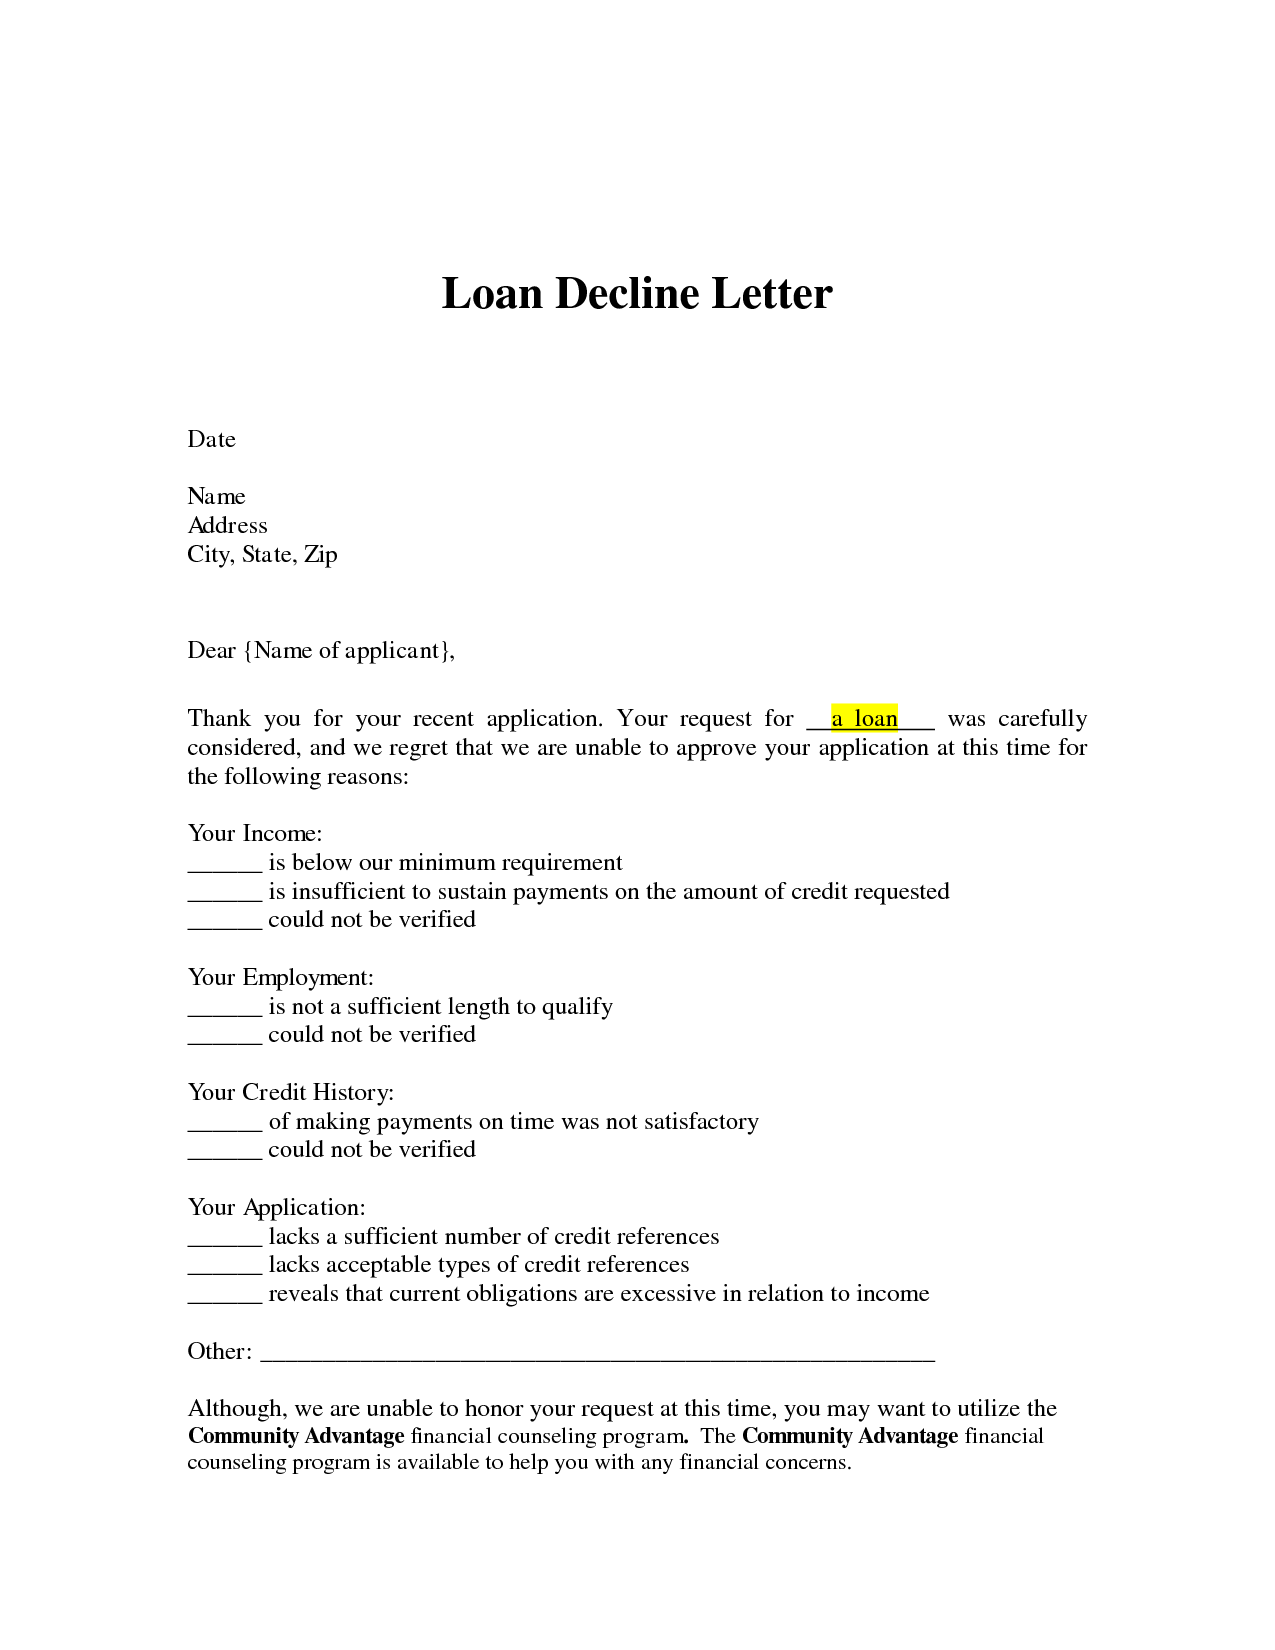 best images about decline letters letter sample 17 best images about decline letters letter sample other and interview